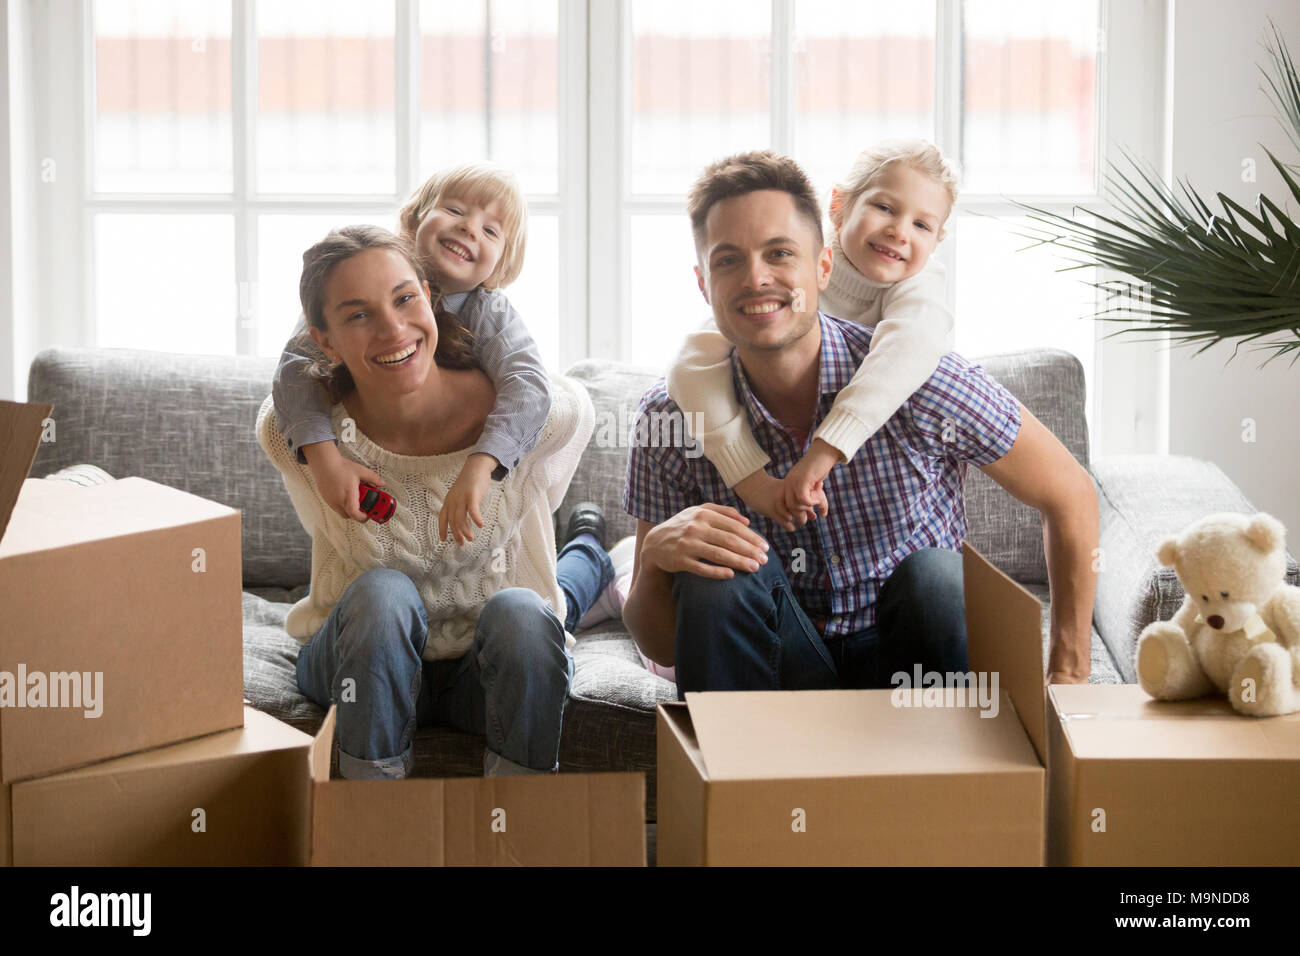 Portrait of happy young multinational family bonding together, smiling adopted kids embracing parents on couch with boxes on moving day, children hugg Stock Photo